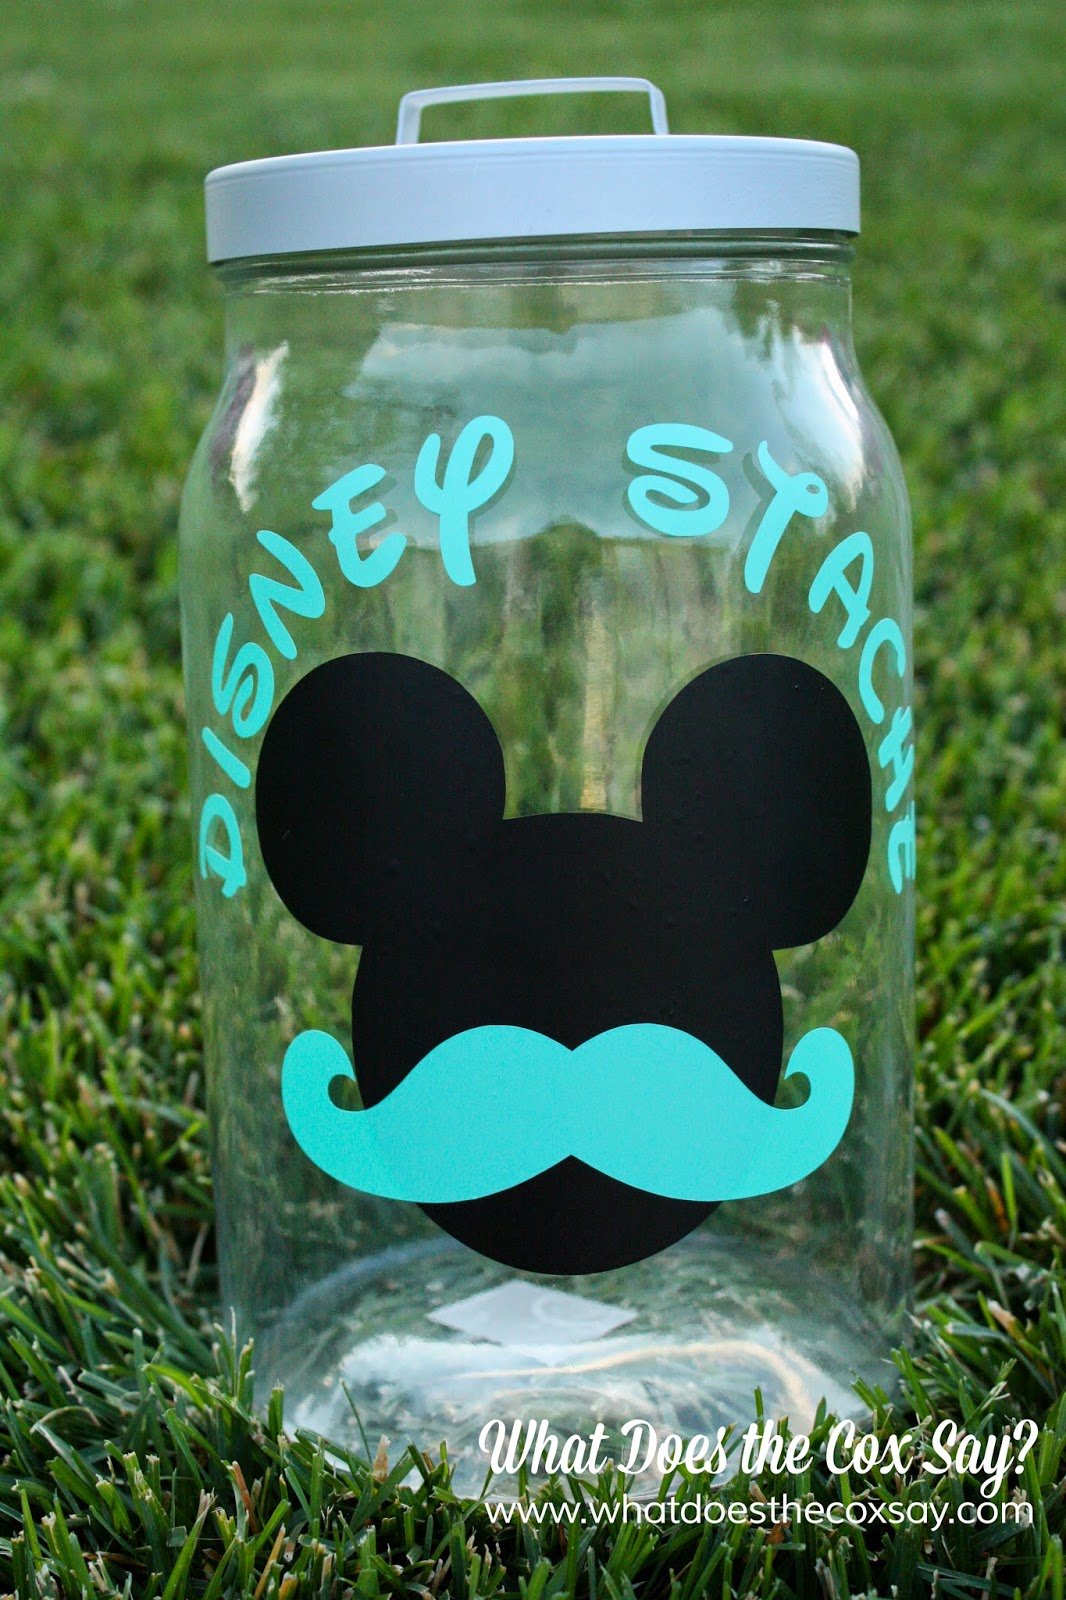 #disneystache #disney #whatdoesthecoxsay #savingsjar